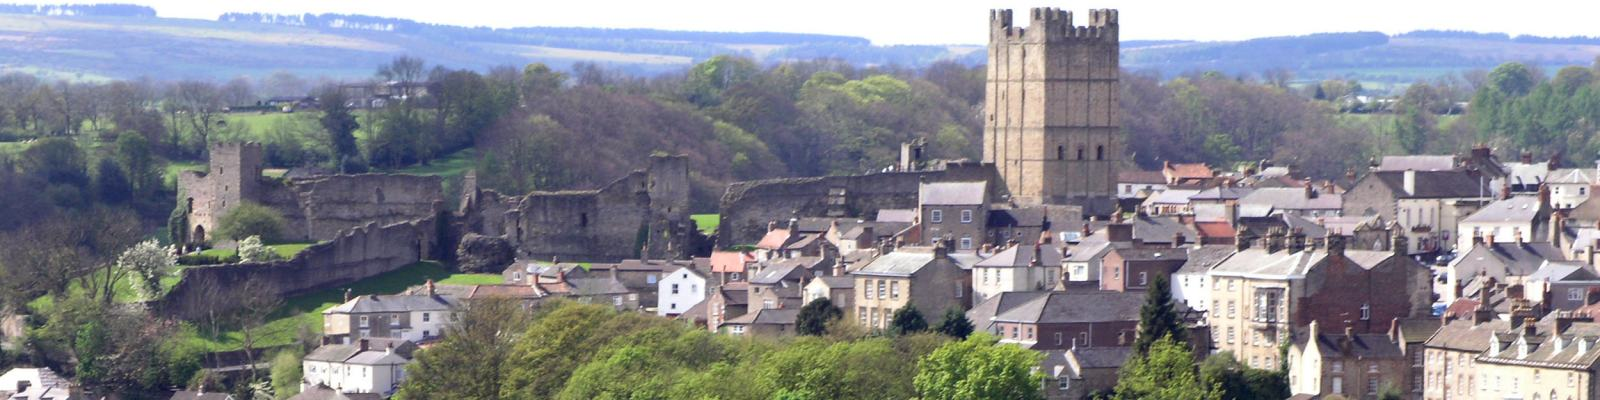 Self Catering Holiday Cottages In Richmond Yorkshire Dales